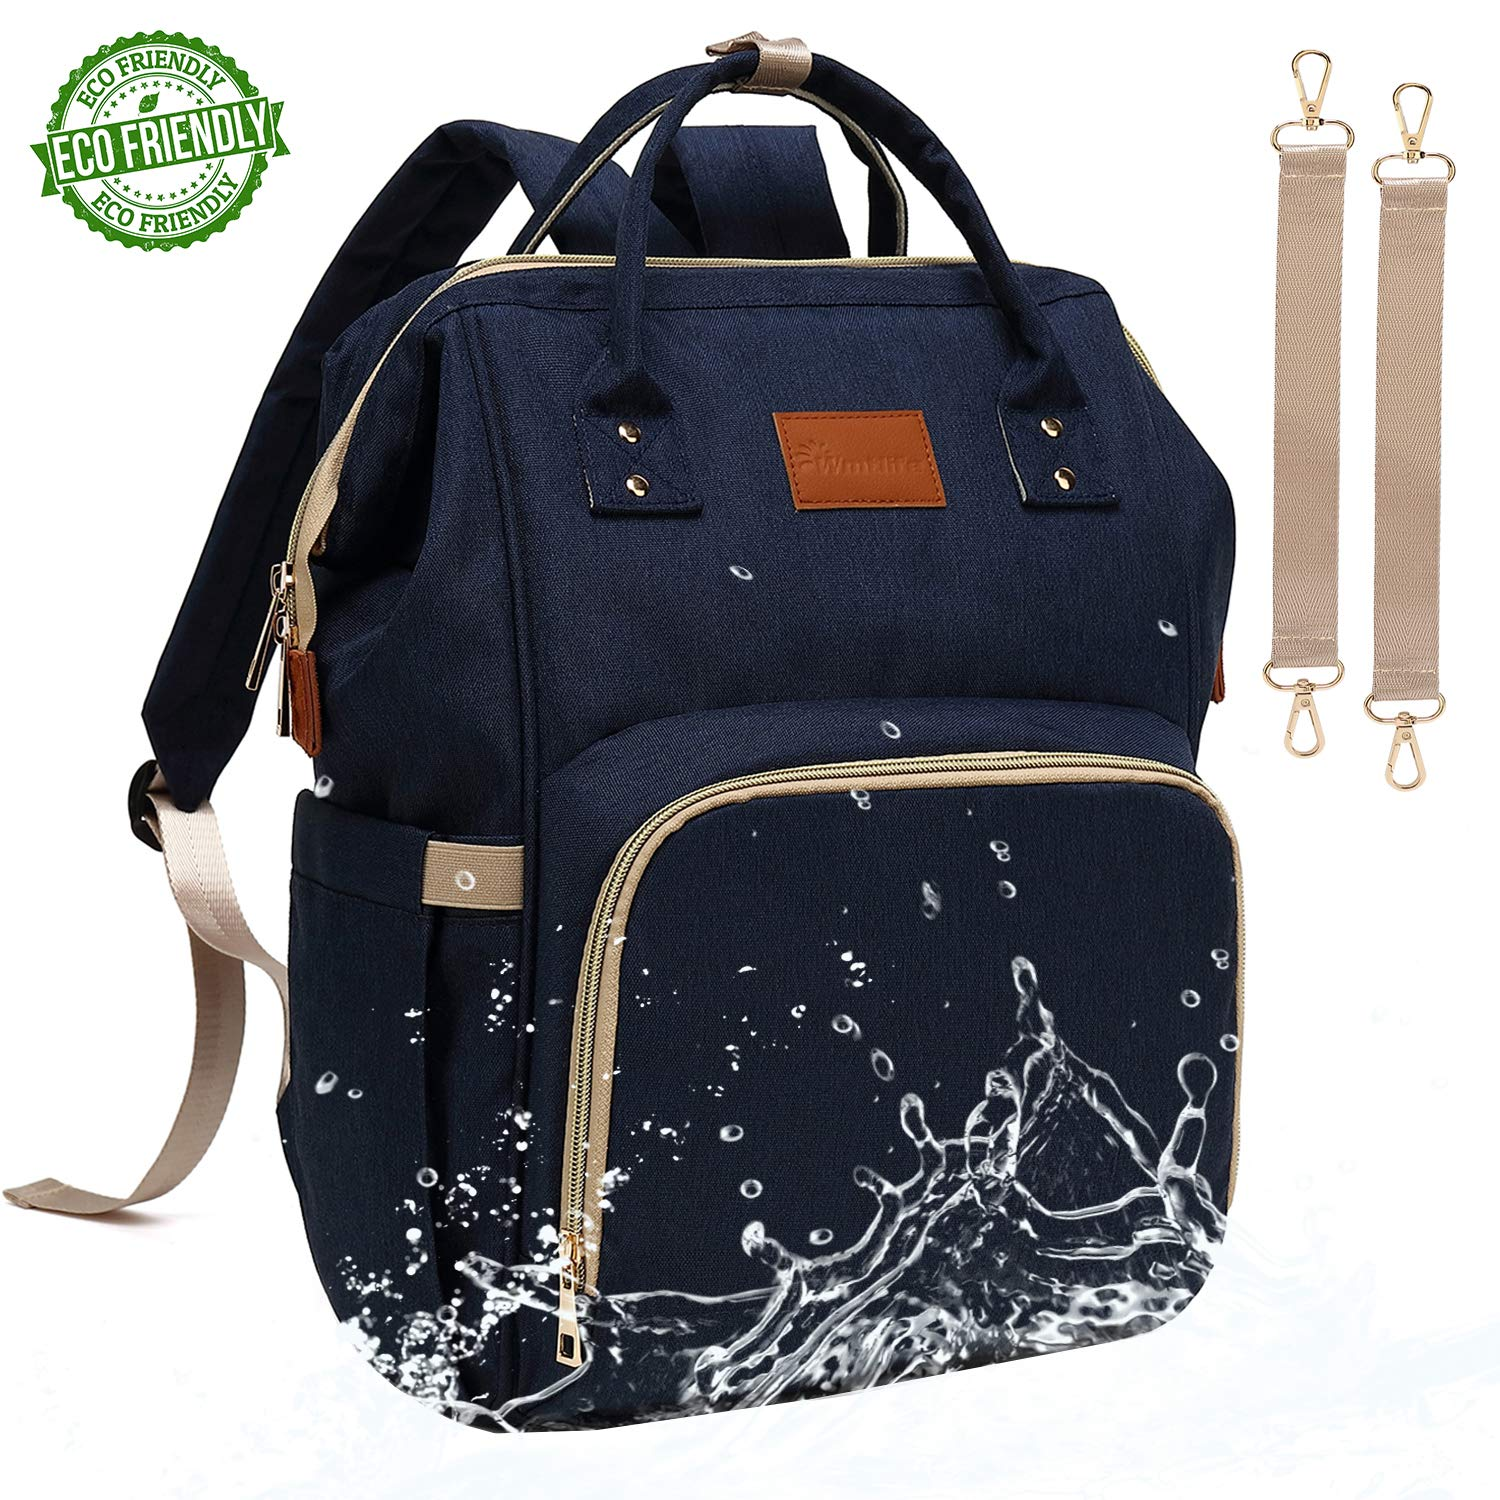 Baby Diaper Bag Backpack – Large Diaper Backpack for Mom Dad with Stroller Straps, Multi-Function, Waterproof, Stylish and Durable Travel Diaper Bags for Girls and Boys (Navy Blue) by Wmtlife (Image #1)